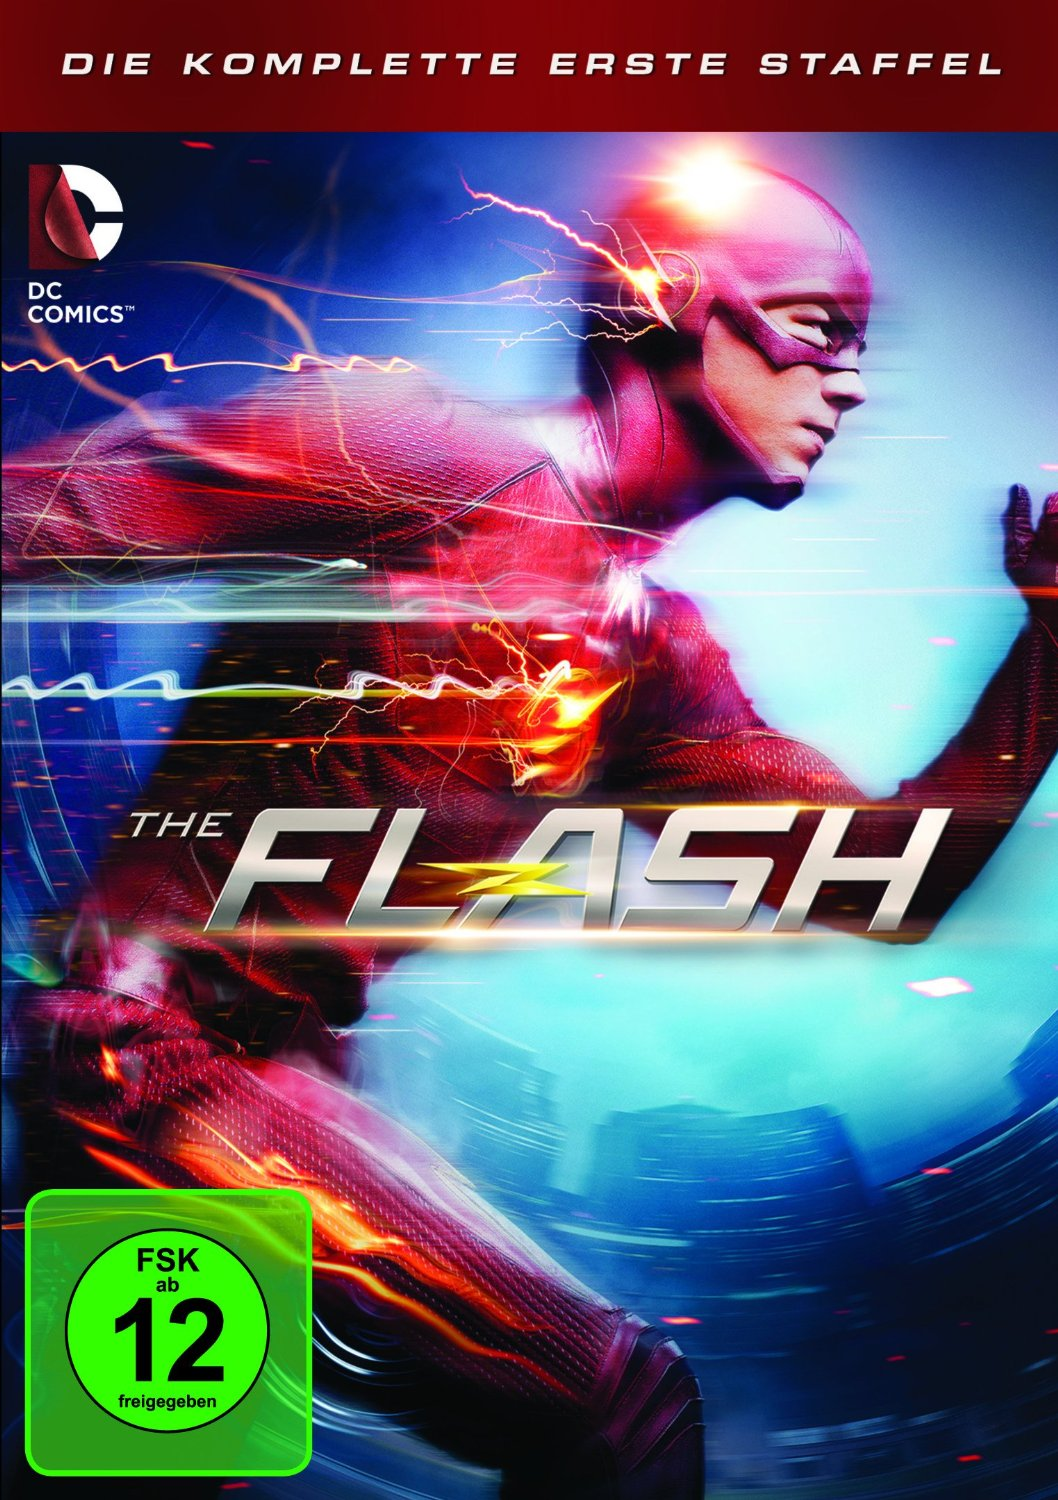 The Flash Fsk